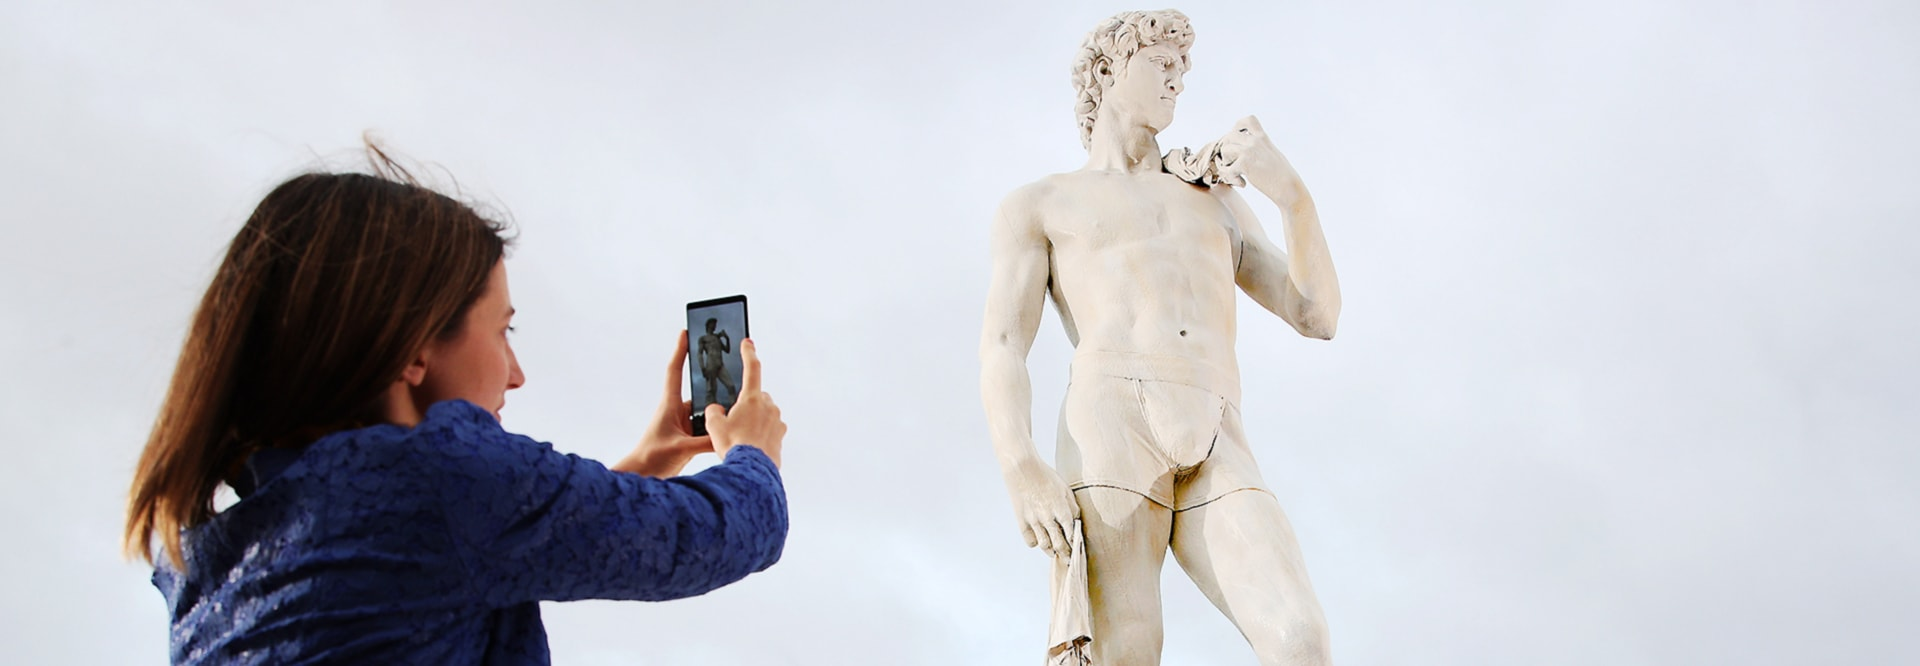 Replica of Michelangelo's David with a modern twist